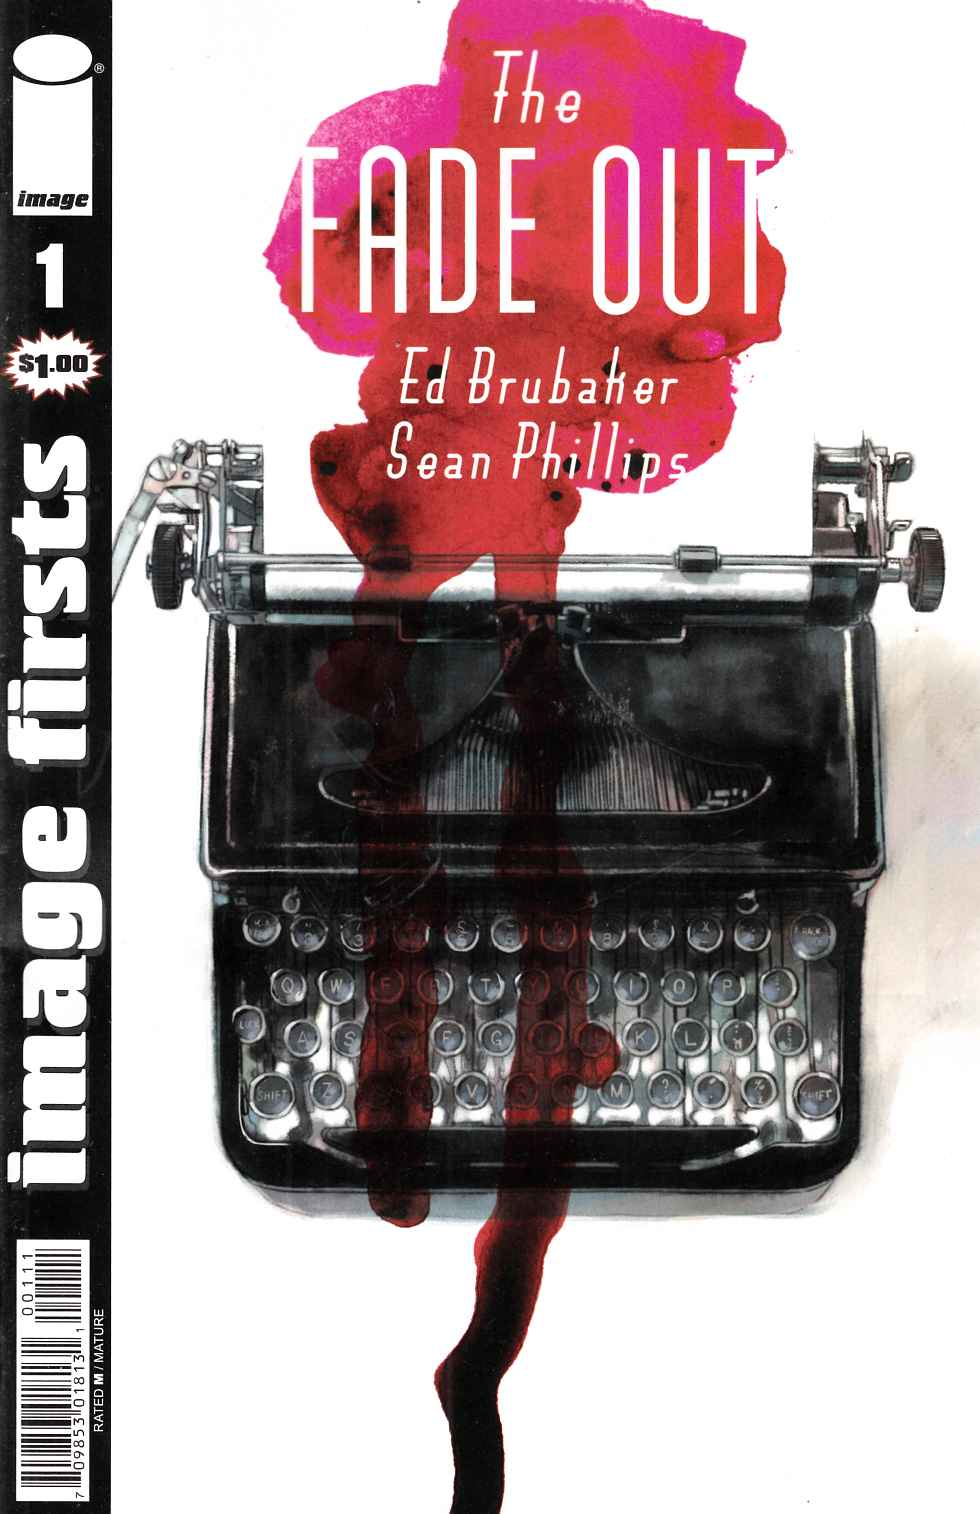 Fade Out #1 1 for $1 Edition [Image Comic] THUMBNAIL